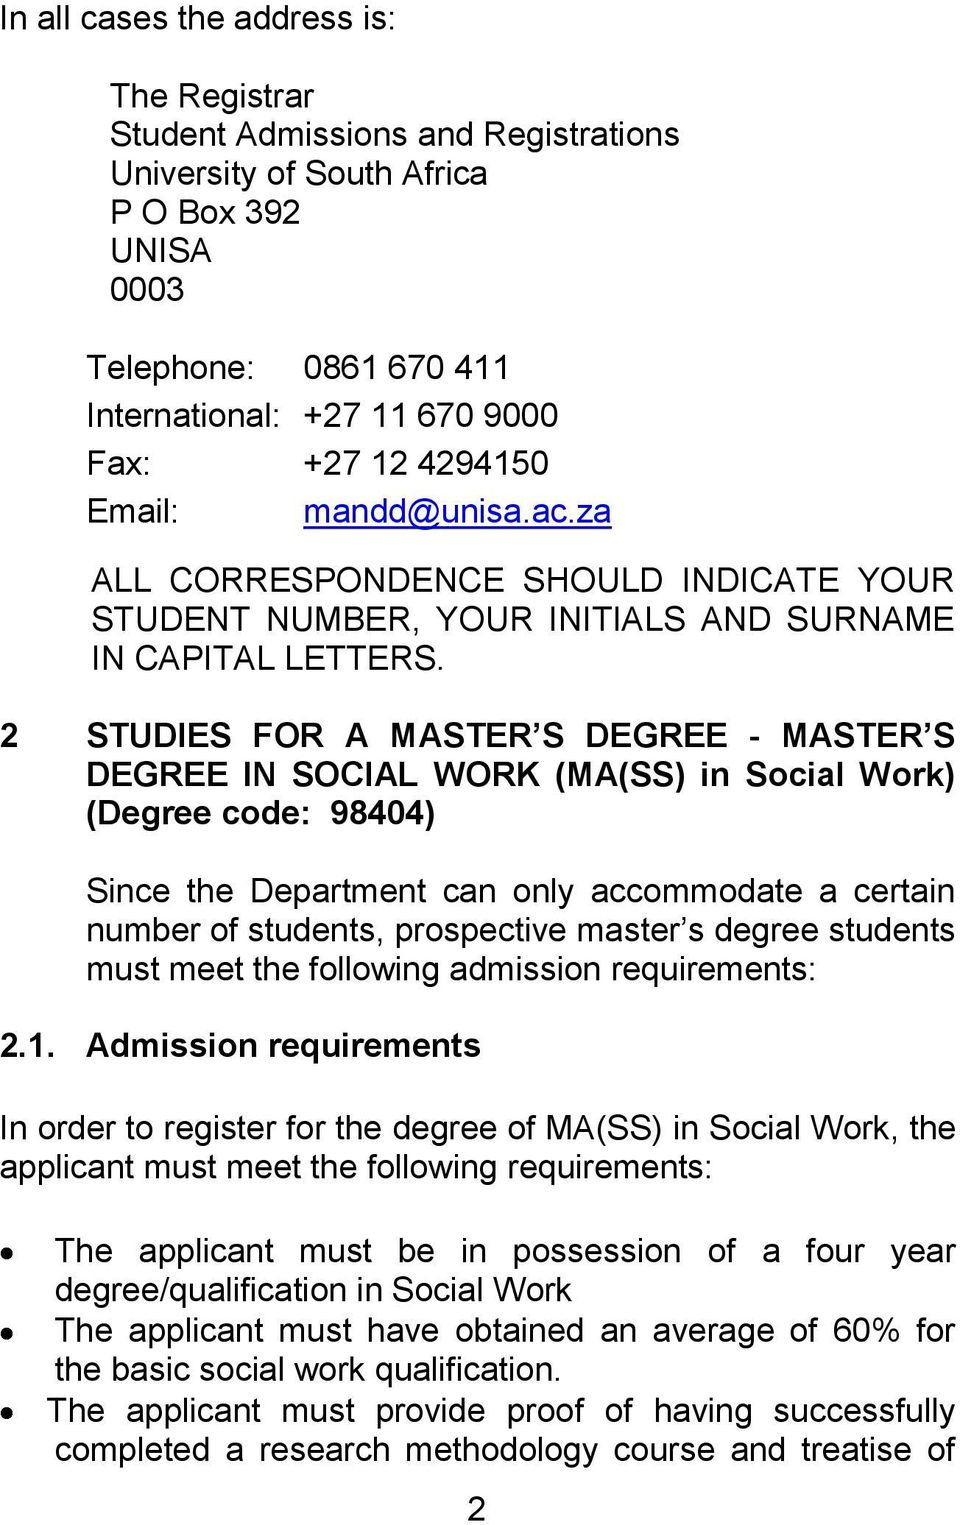 2 STUDIES FOR A MASTER S DEGREE - MASTER S DEGREE IN SOCIAL WORK (MA(SS) in Social Work) (Degree code: 98404) Since the Department can only accommodate a certain number of students, prospective